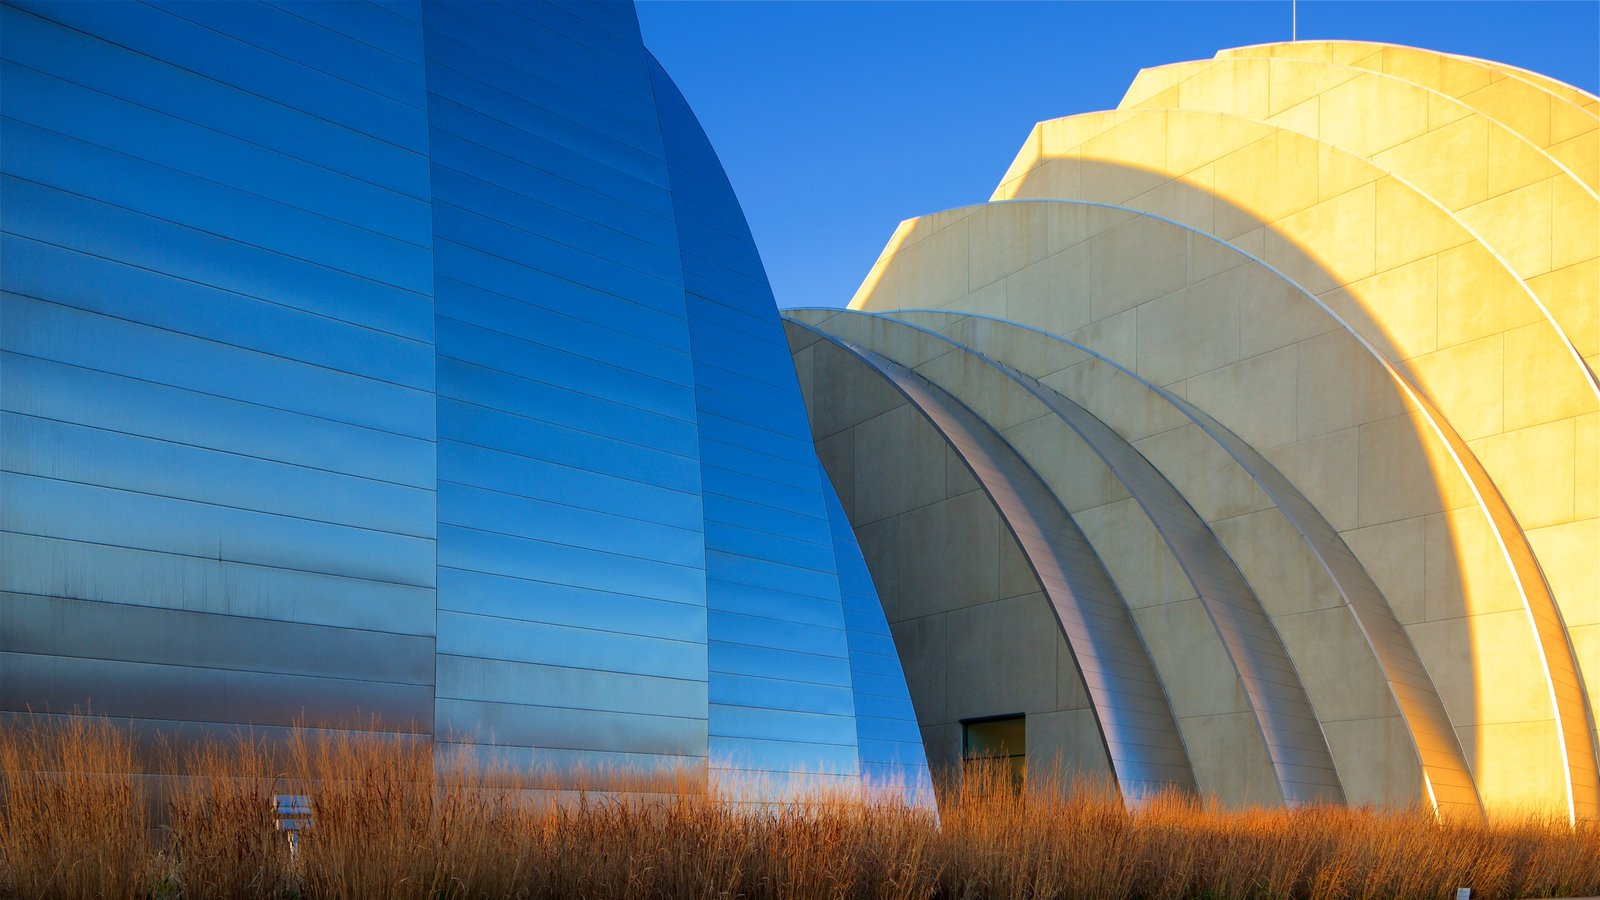 Kauffman Center for the Performing Arts showing modern architecture